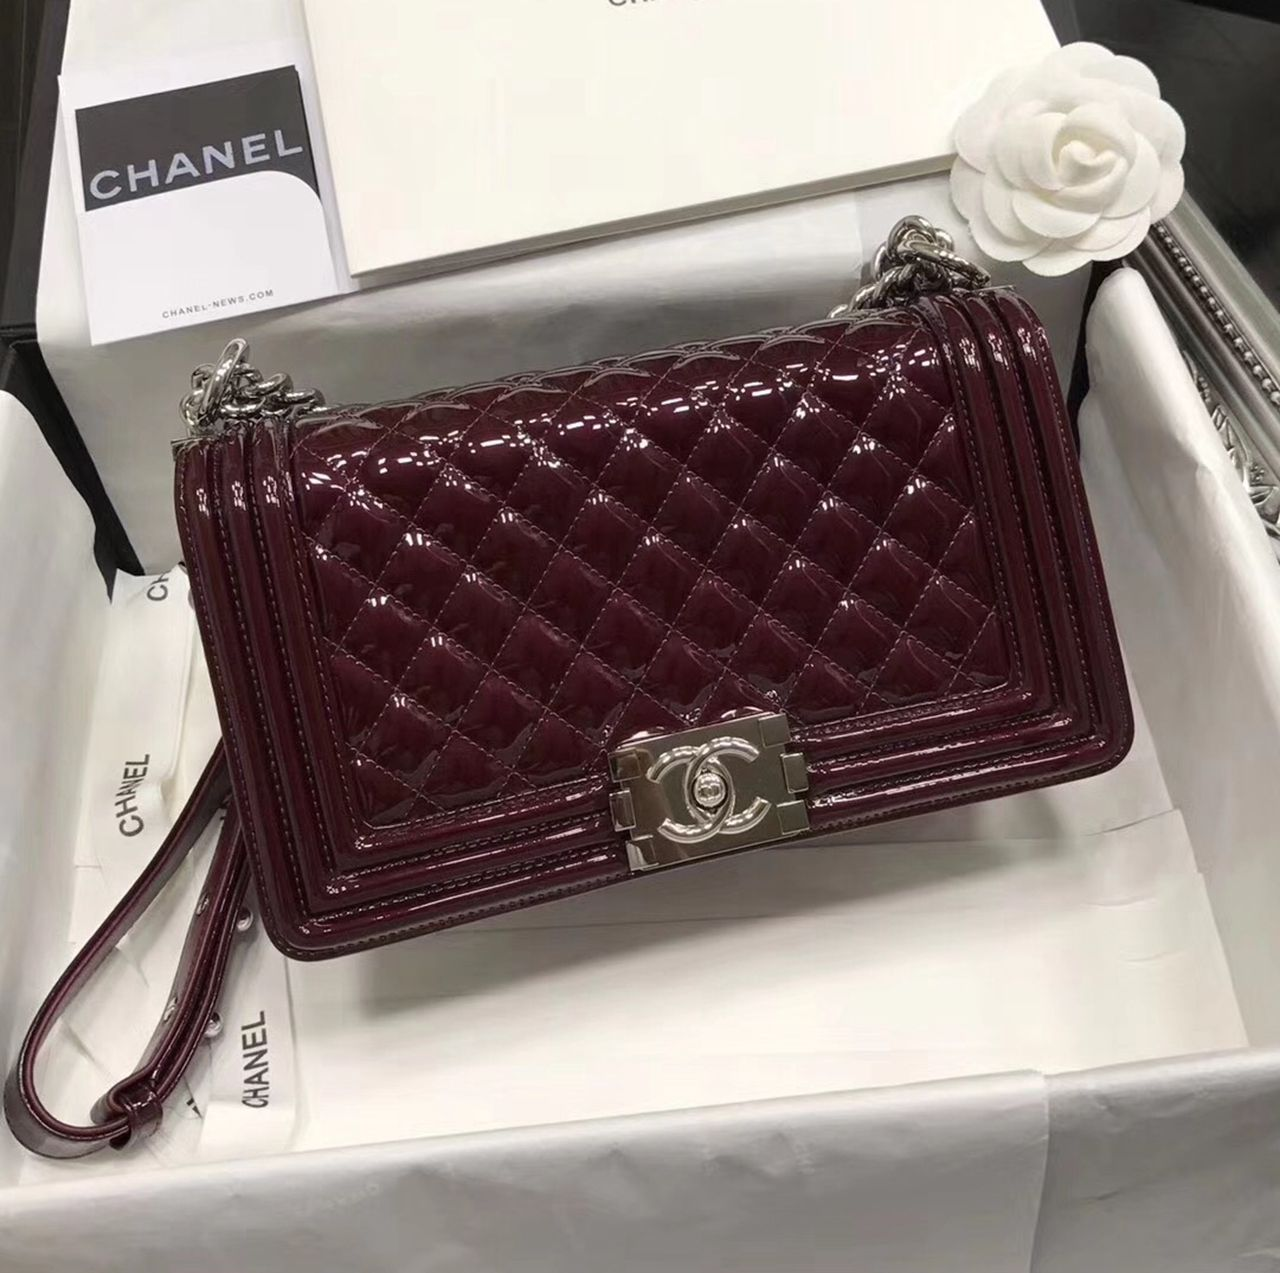 24de727671d0 Chanel Original Patent Leather Medium Le Boy Flap Bag in Burgundy 25cm